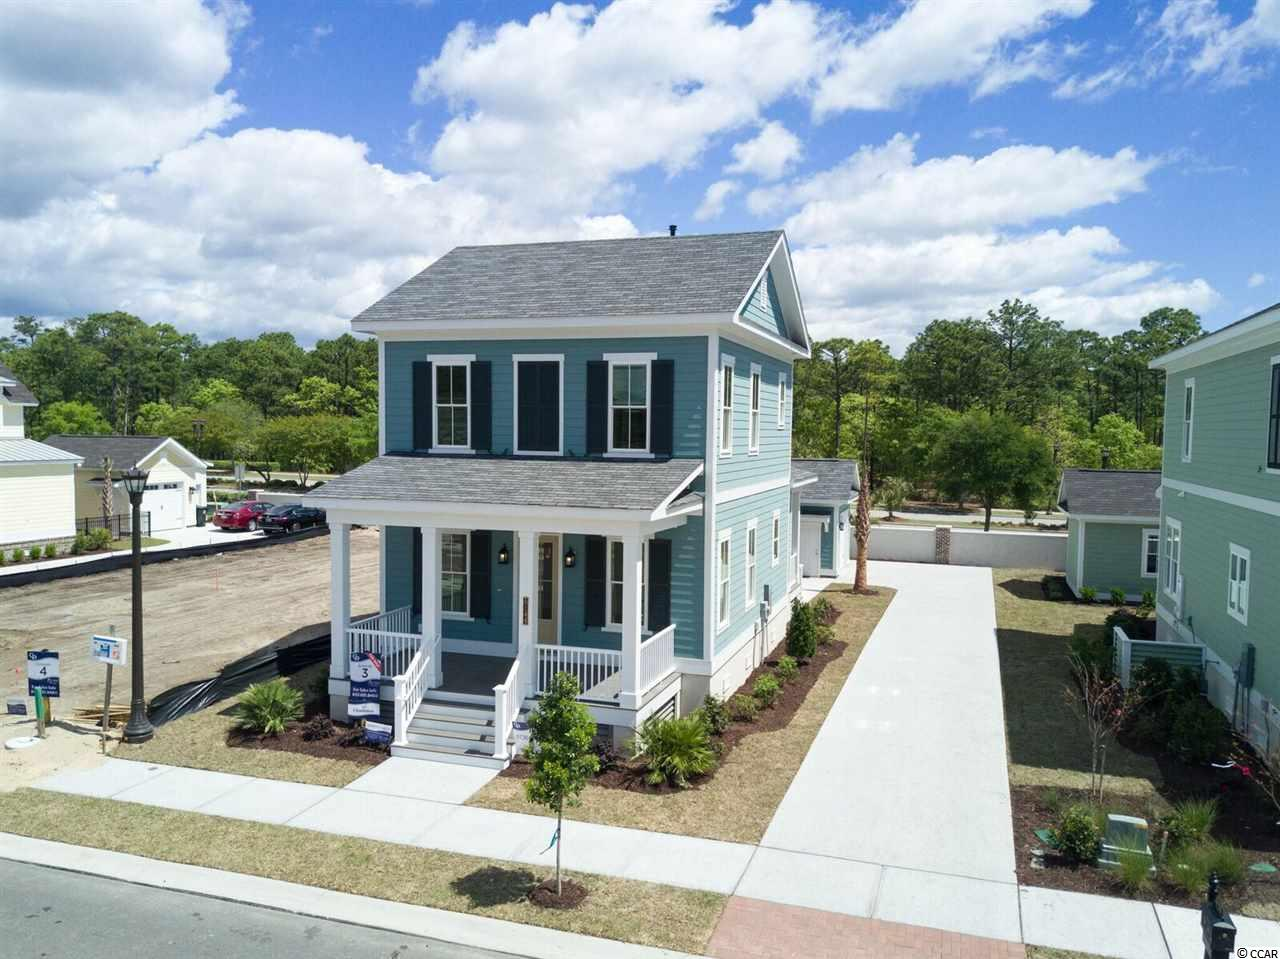 Single Family Home for Sale at Lot 3 - 8144 Sandlapper Way Myrtle Beach, South Carolina 29572 United States